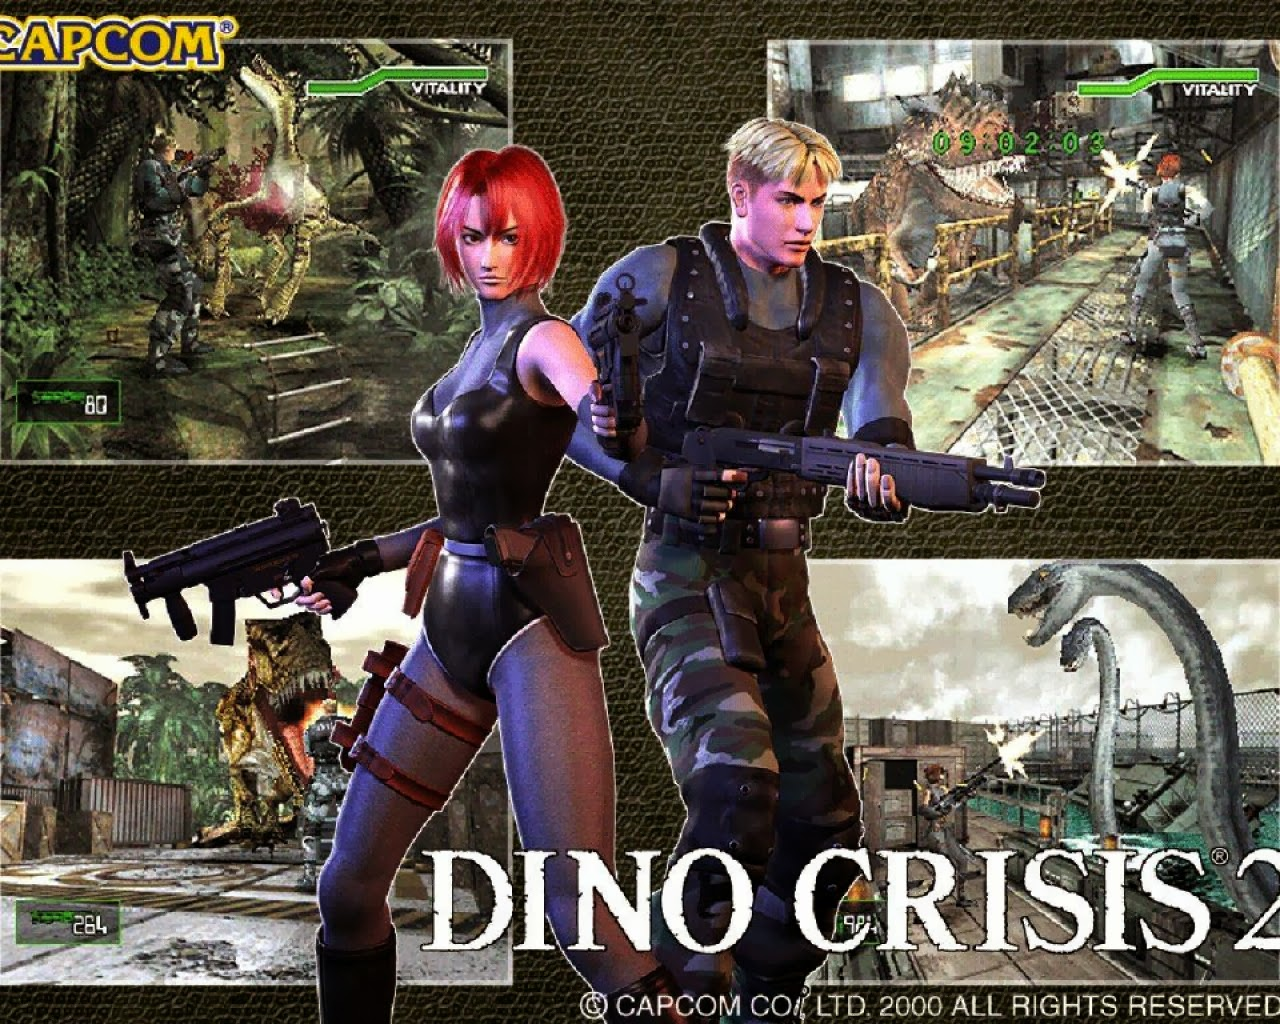 Download Game Dino Crisis 1 & 2 .EXE Portable PS1 Untuk Komputer Laptop